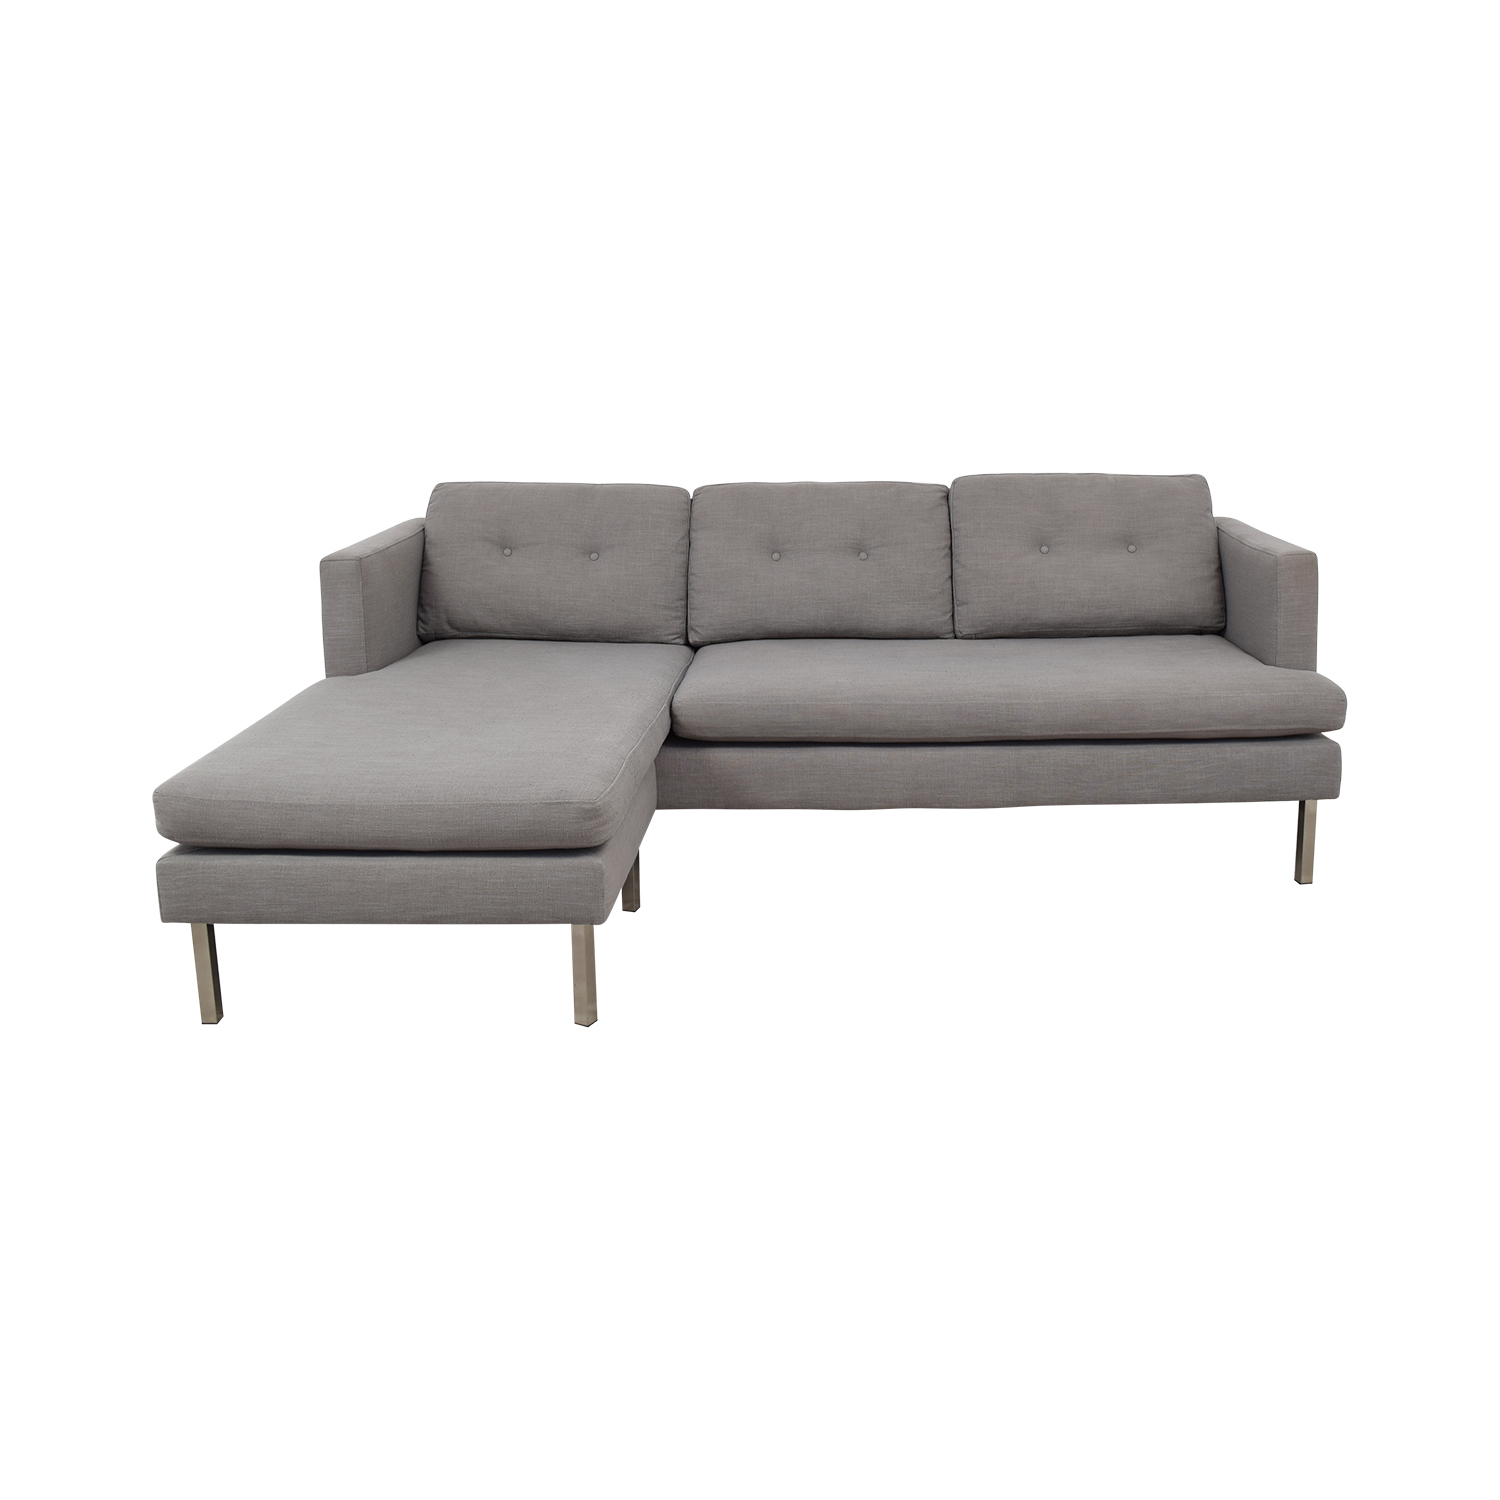 jackson sofa west elm custom beds 61 off grey chaise sectional sofas discount